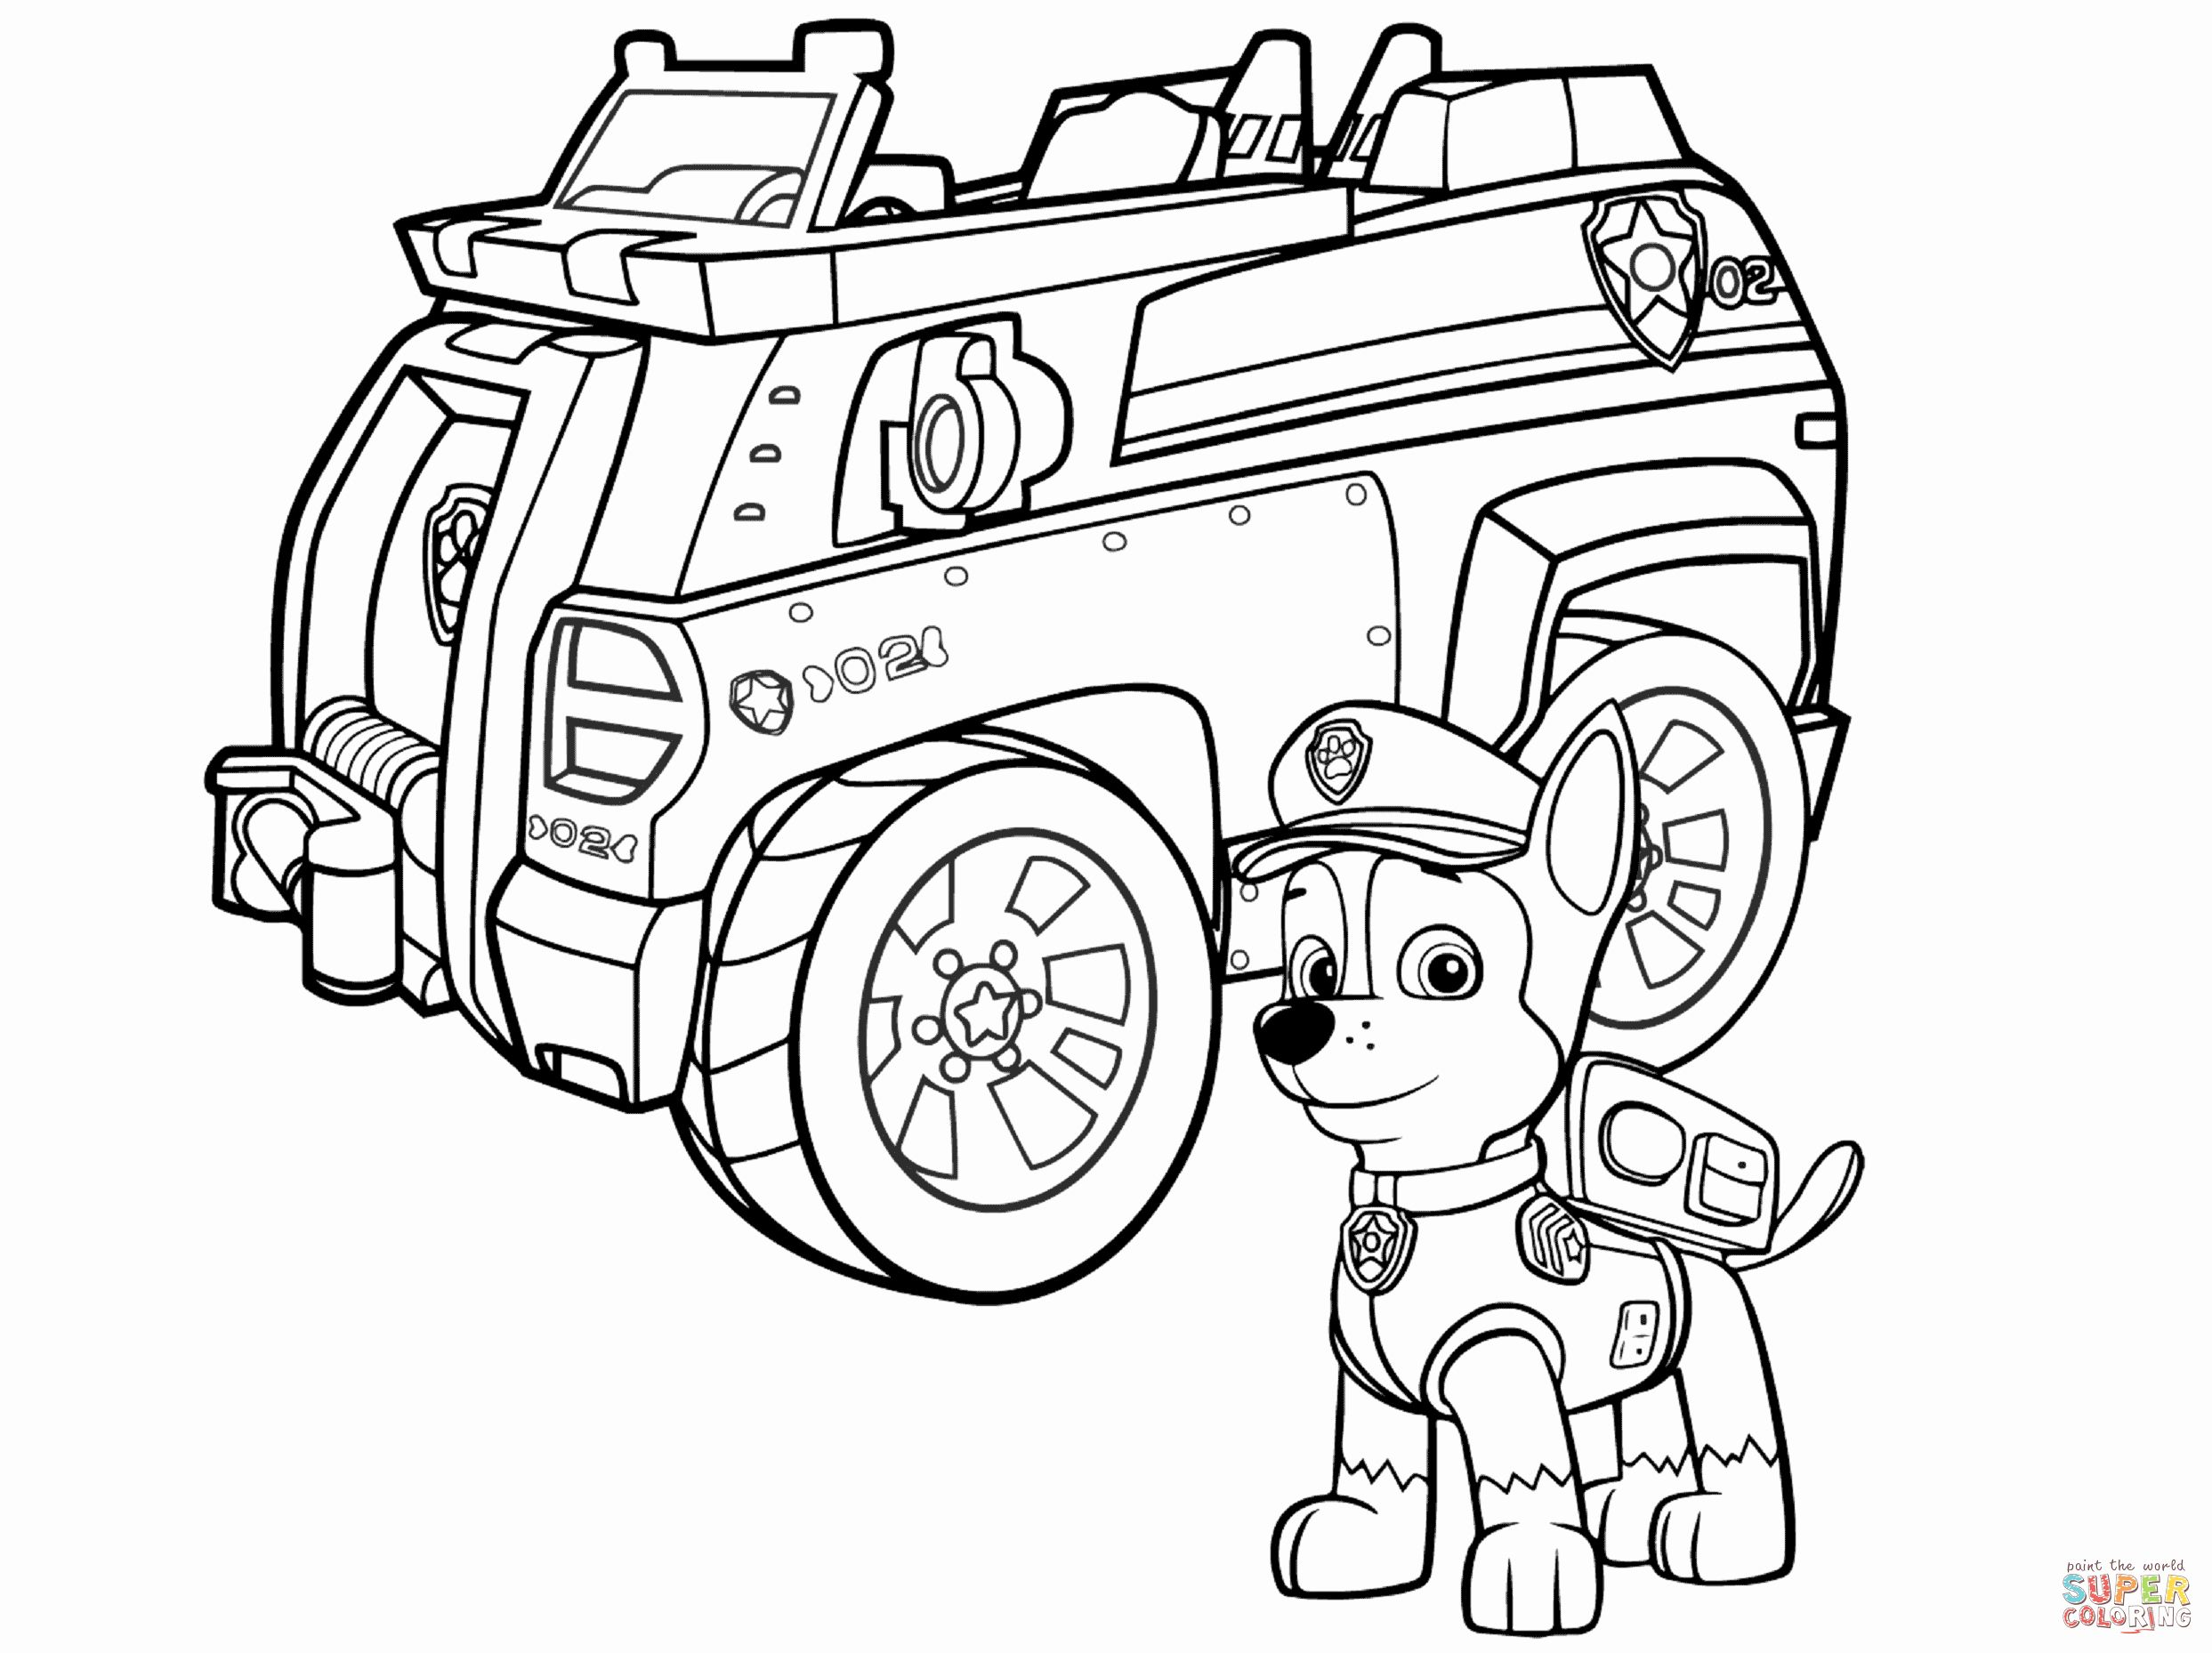 Chase Paw Patrol Coloring Page Beautiful Paw Patrol Chase Police Car Coloring Page In 2020 Paw Patrol Coloring Pages Paw Patrol Coloring Truck Coloring Pages